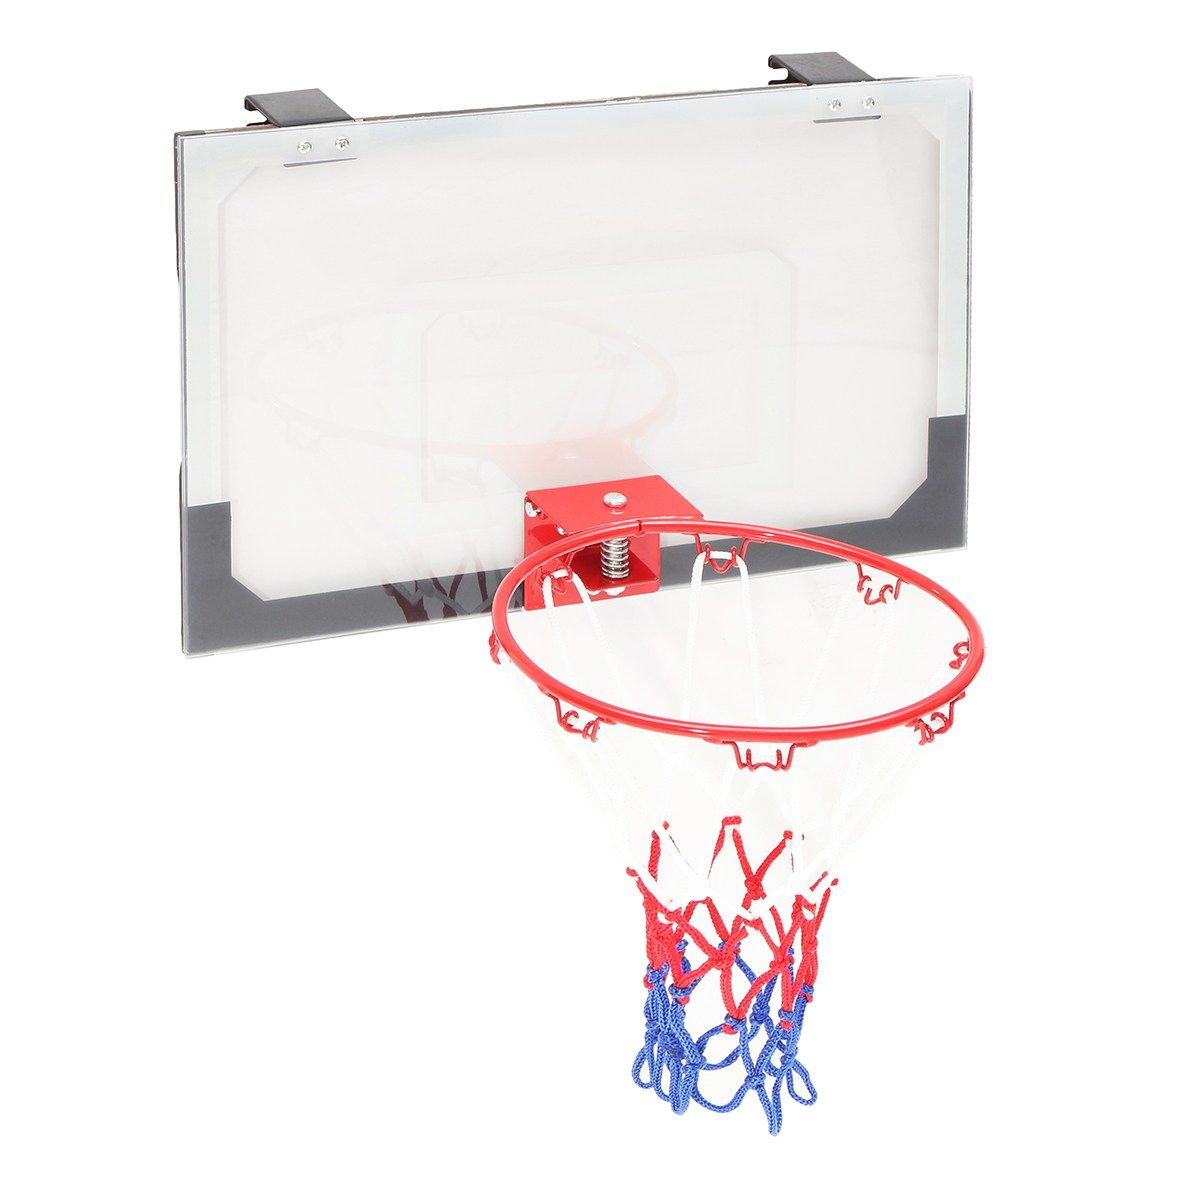 Indoor Adjustable Hanging Basketball Hoop Mini Basketball Board For Game Children Kids Game with ball and air pump